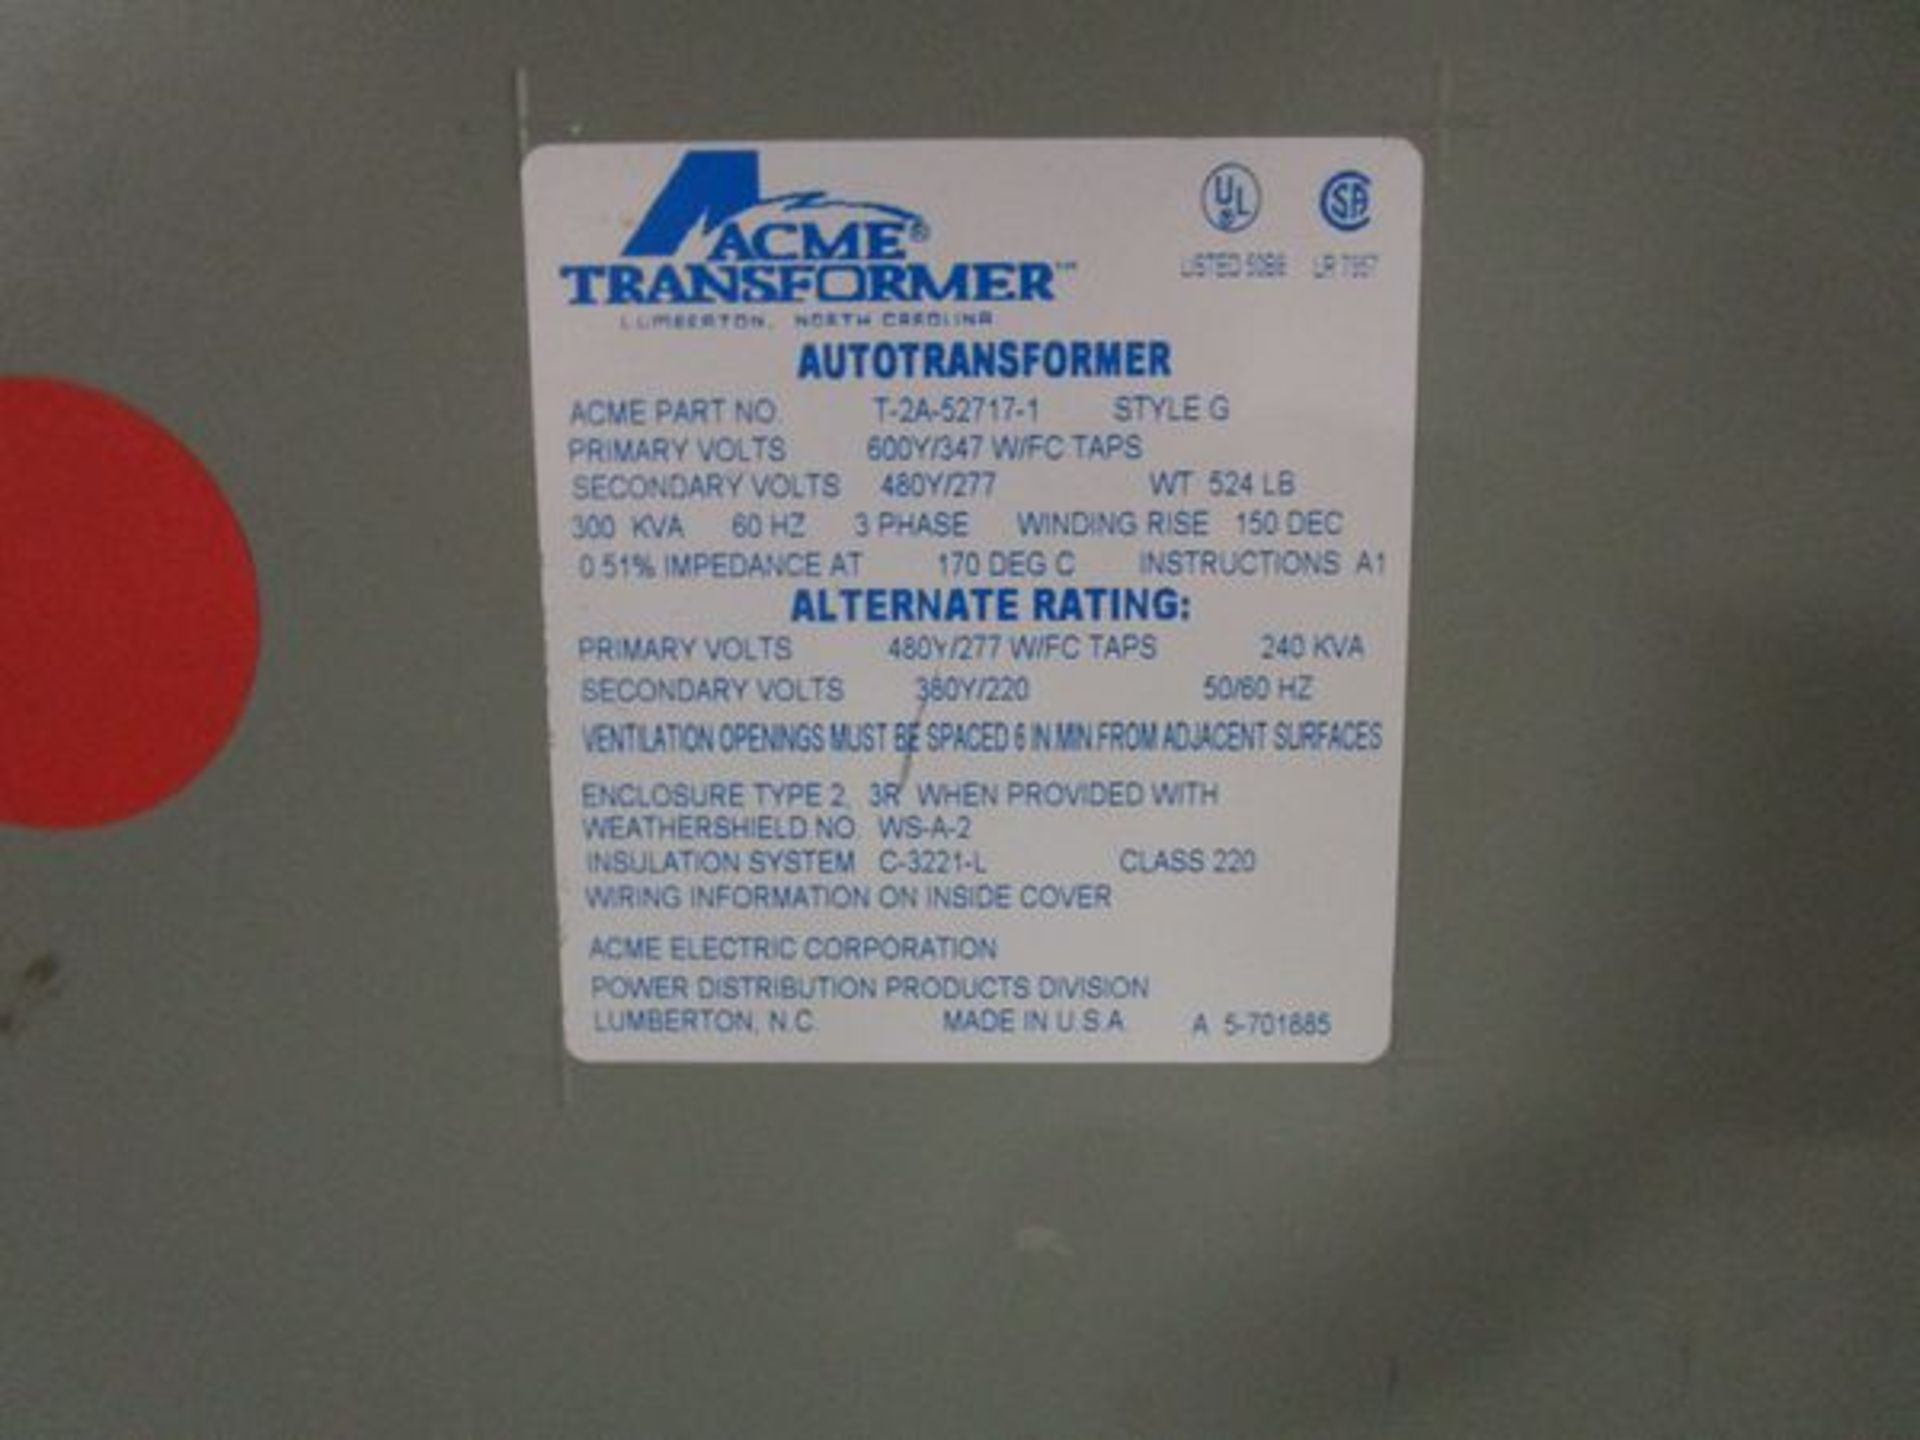 Lot GE HD Safety Switch, Acme T-252703-1 Autotransformer, Acme T-2A-52717-1 Transformer - Image 6 of 6